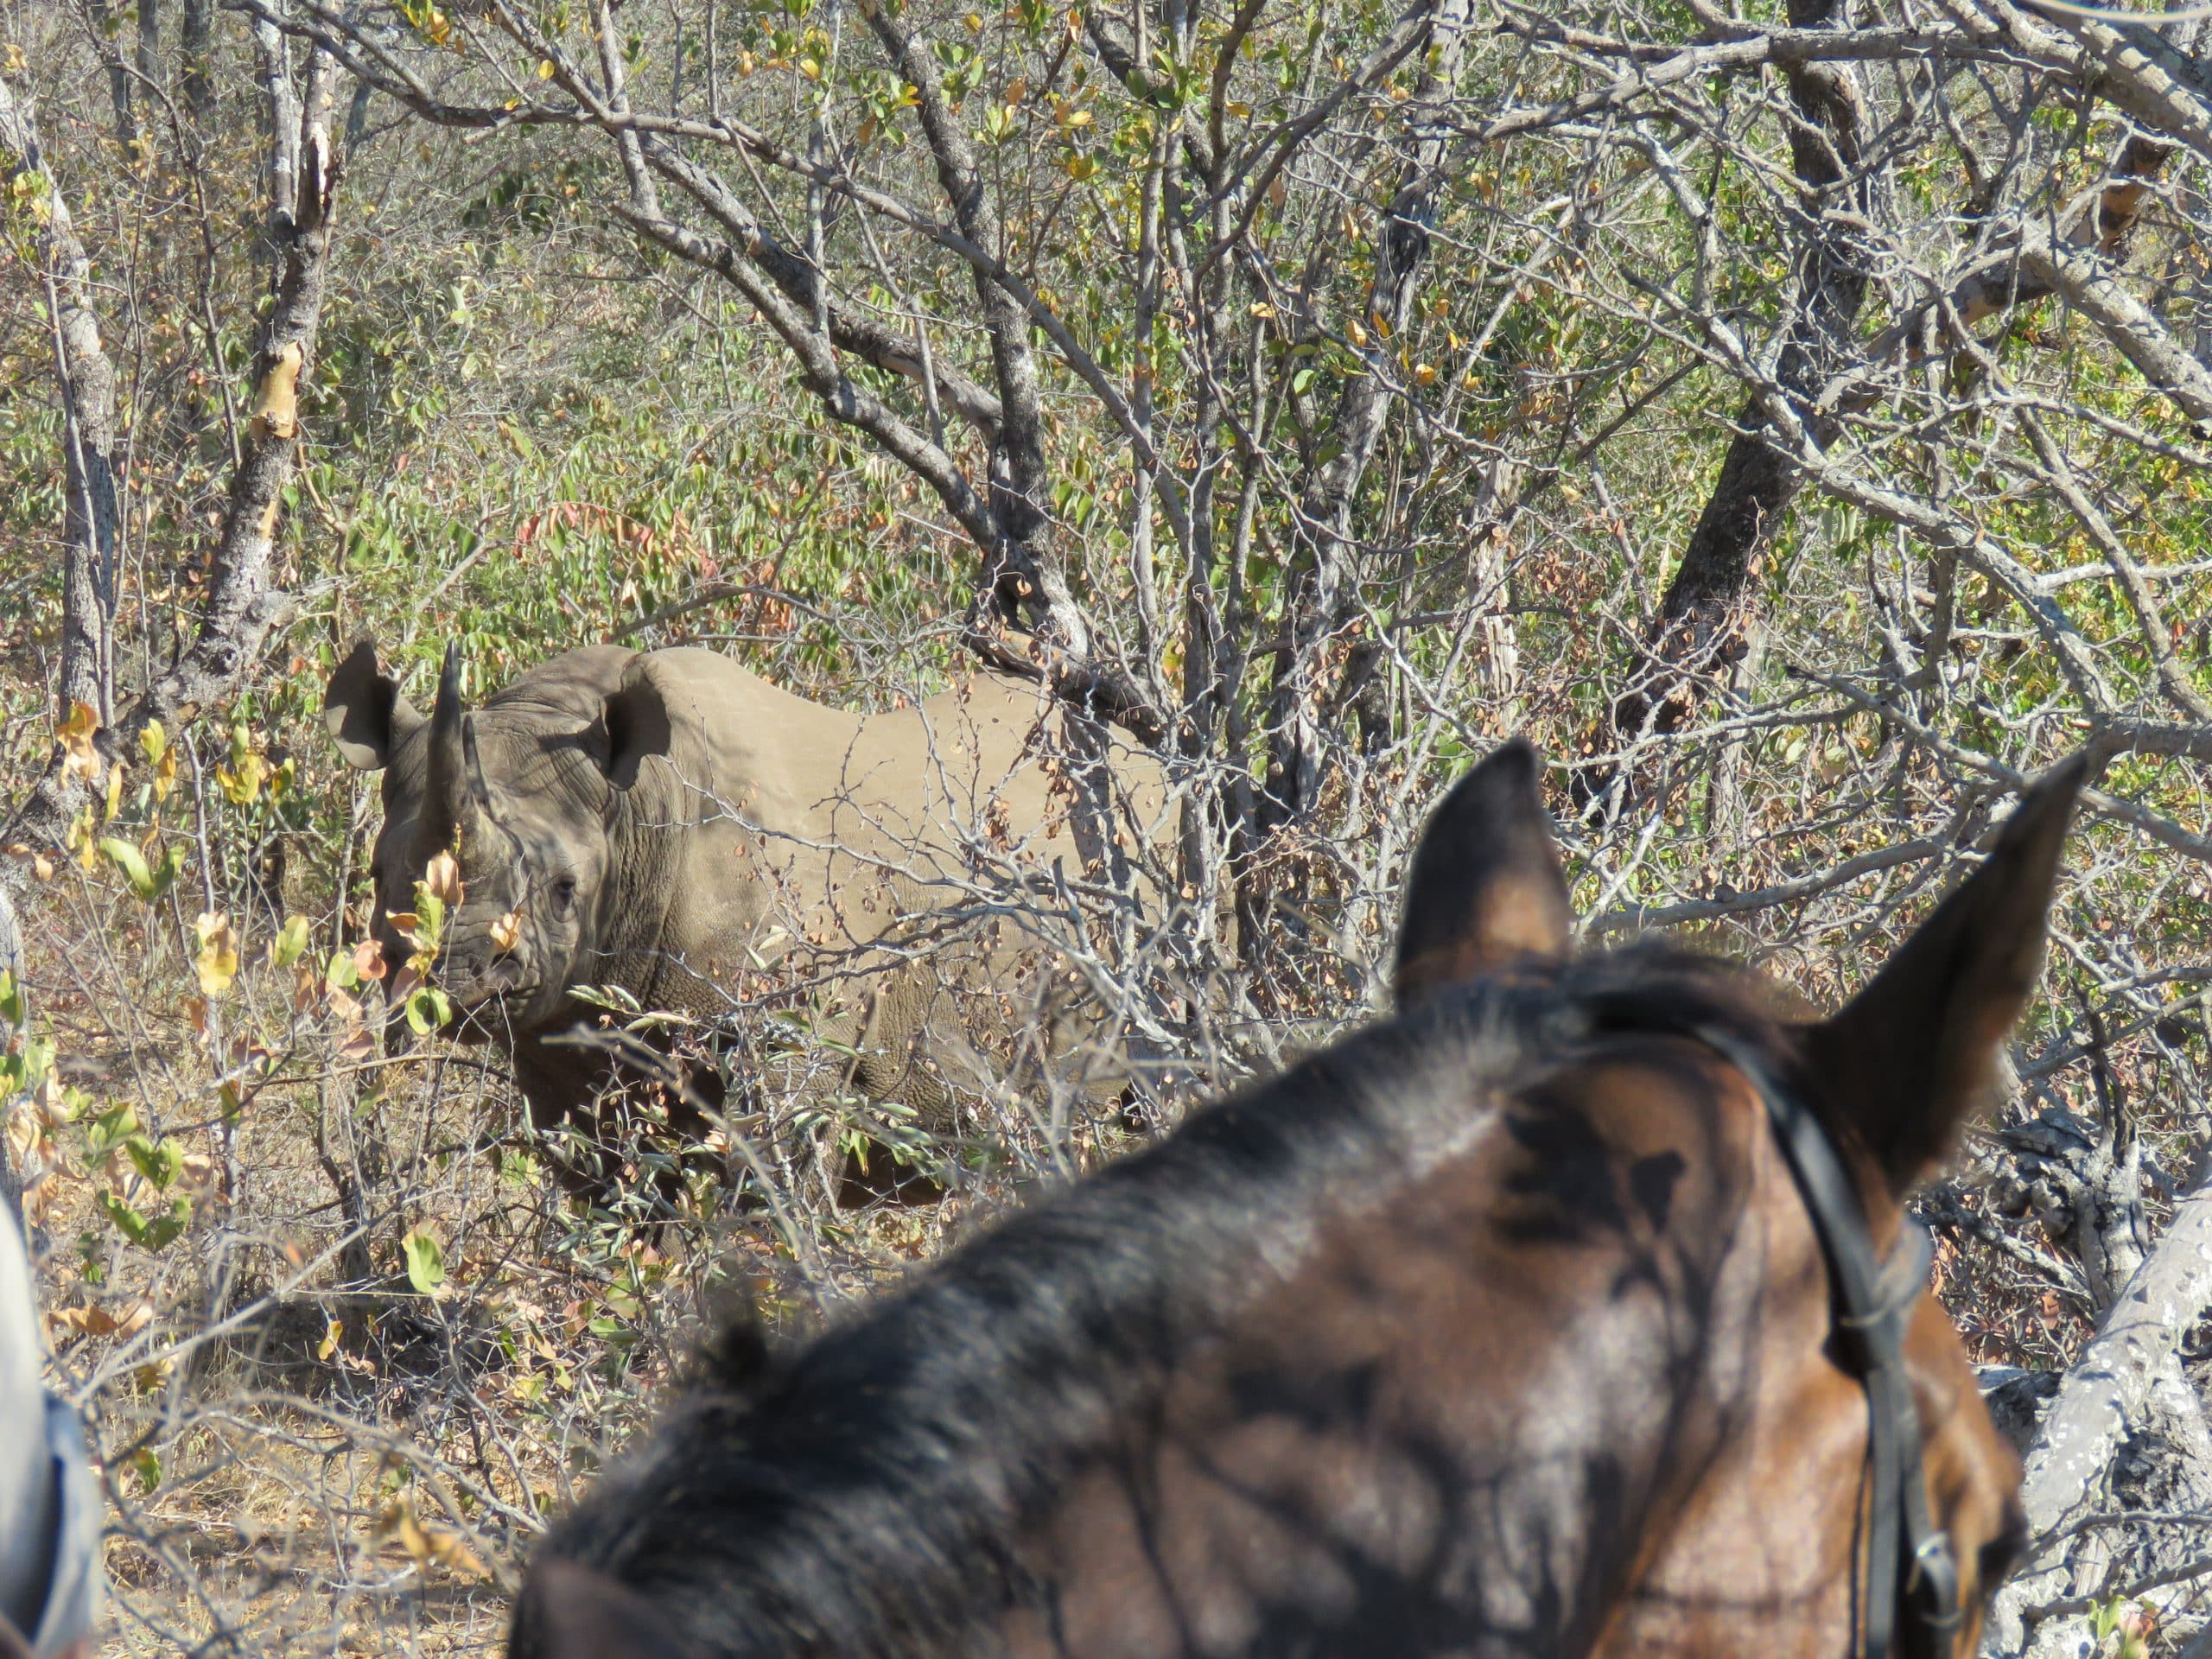 Rhino on horseback trail at Wait-a-Little